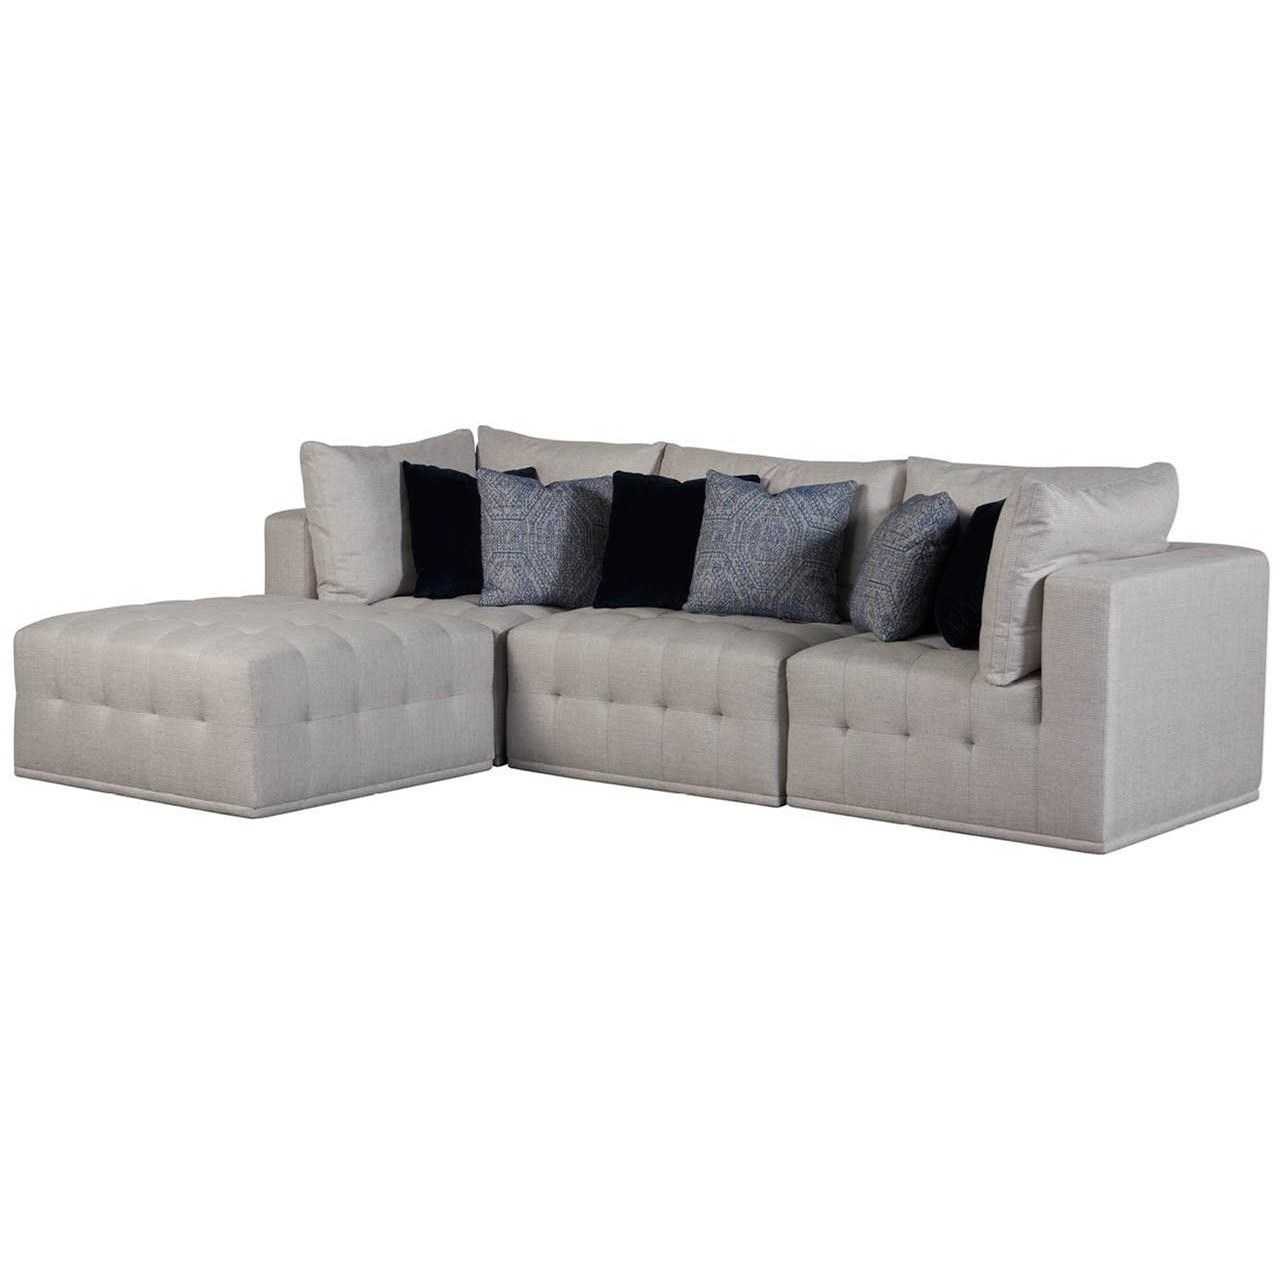 Donovan 4-Piece Sectional by Universal at Belfort Furniture